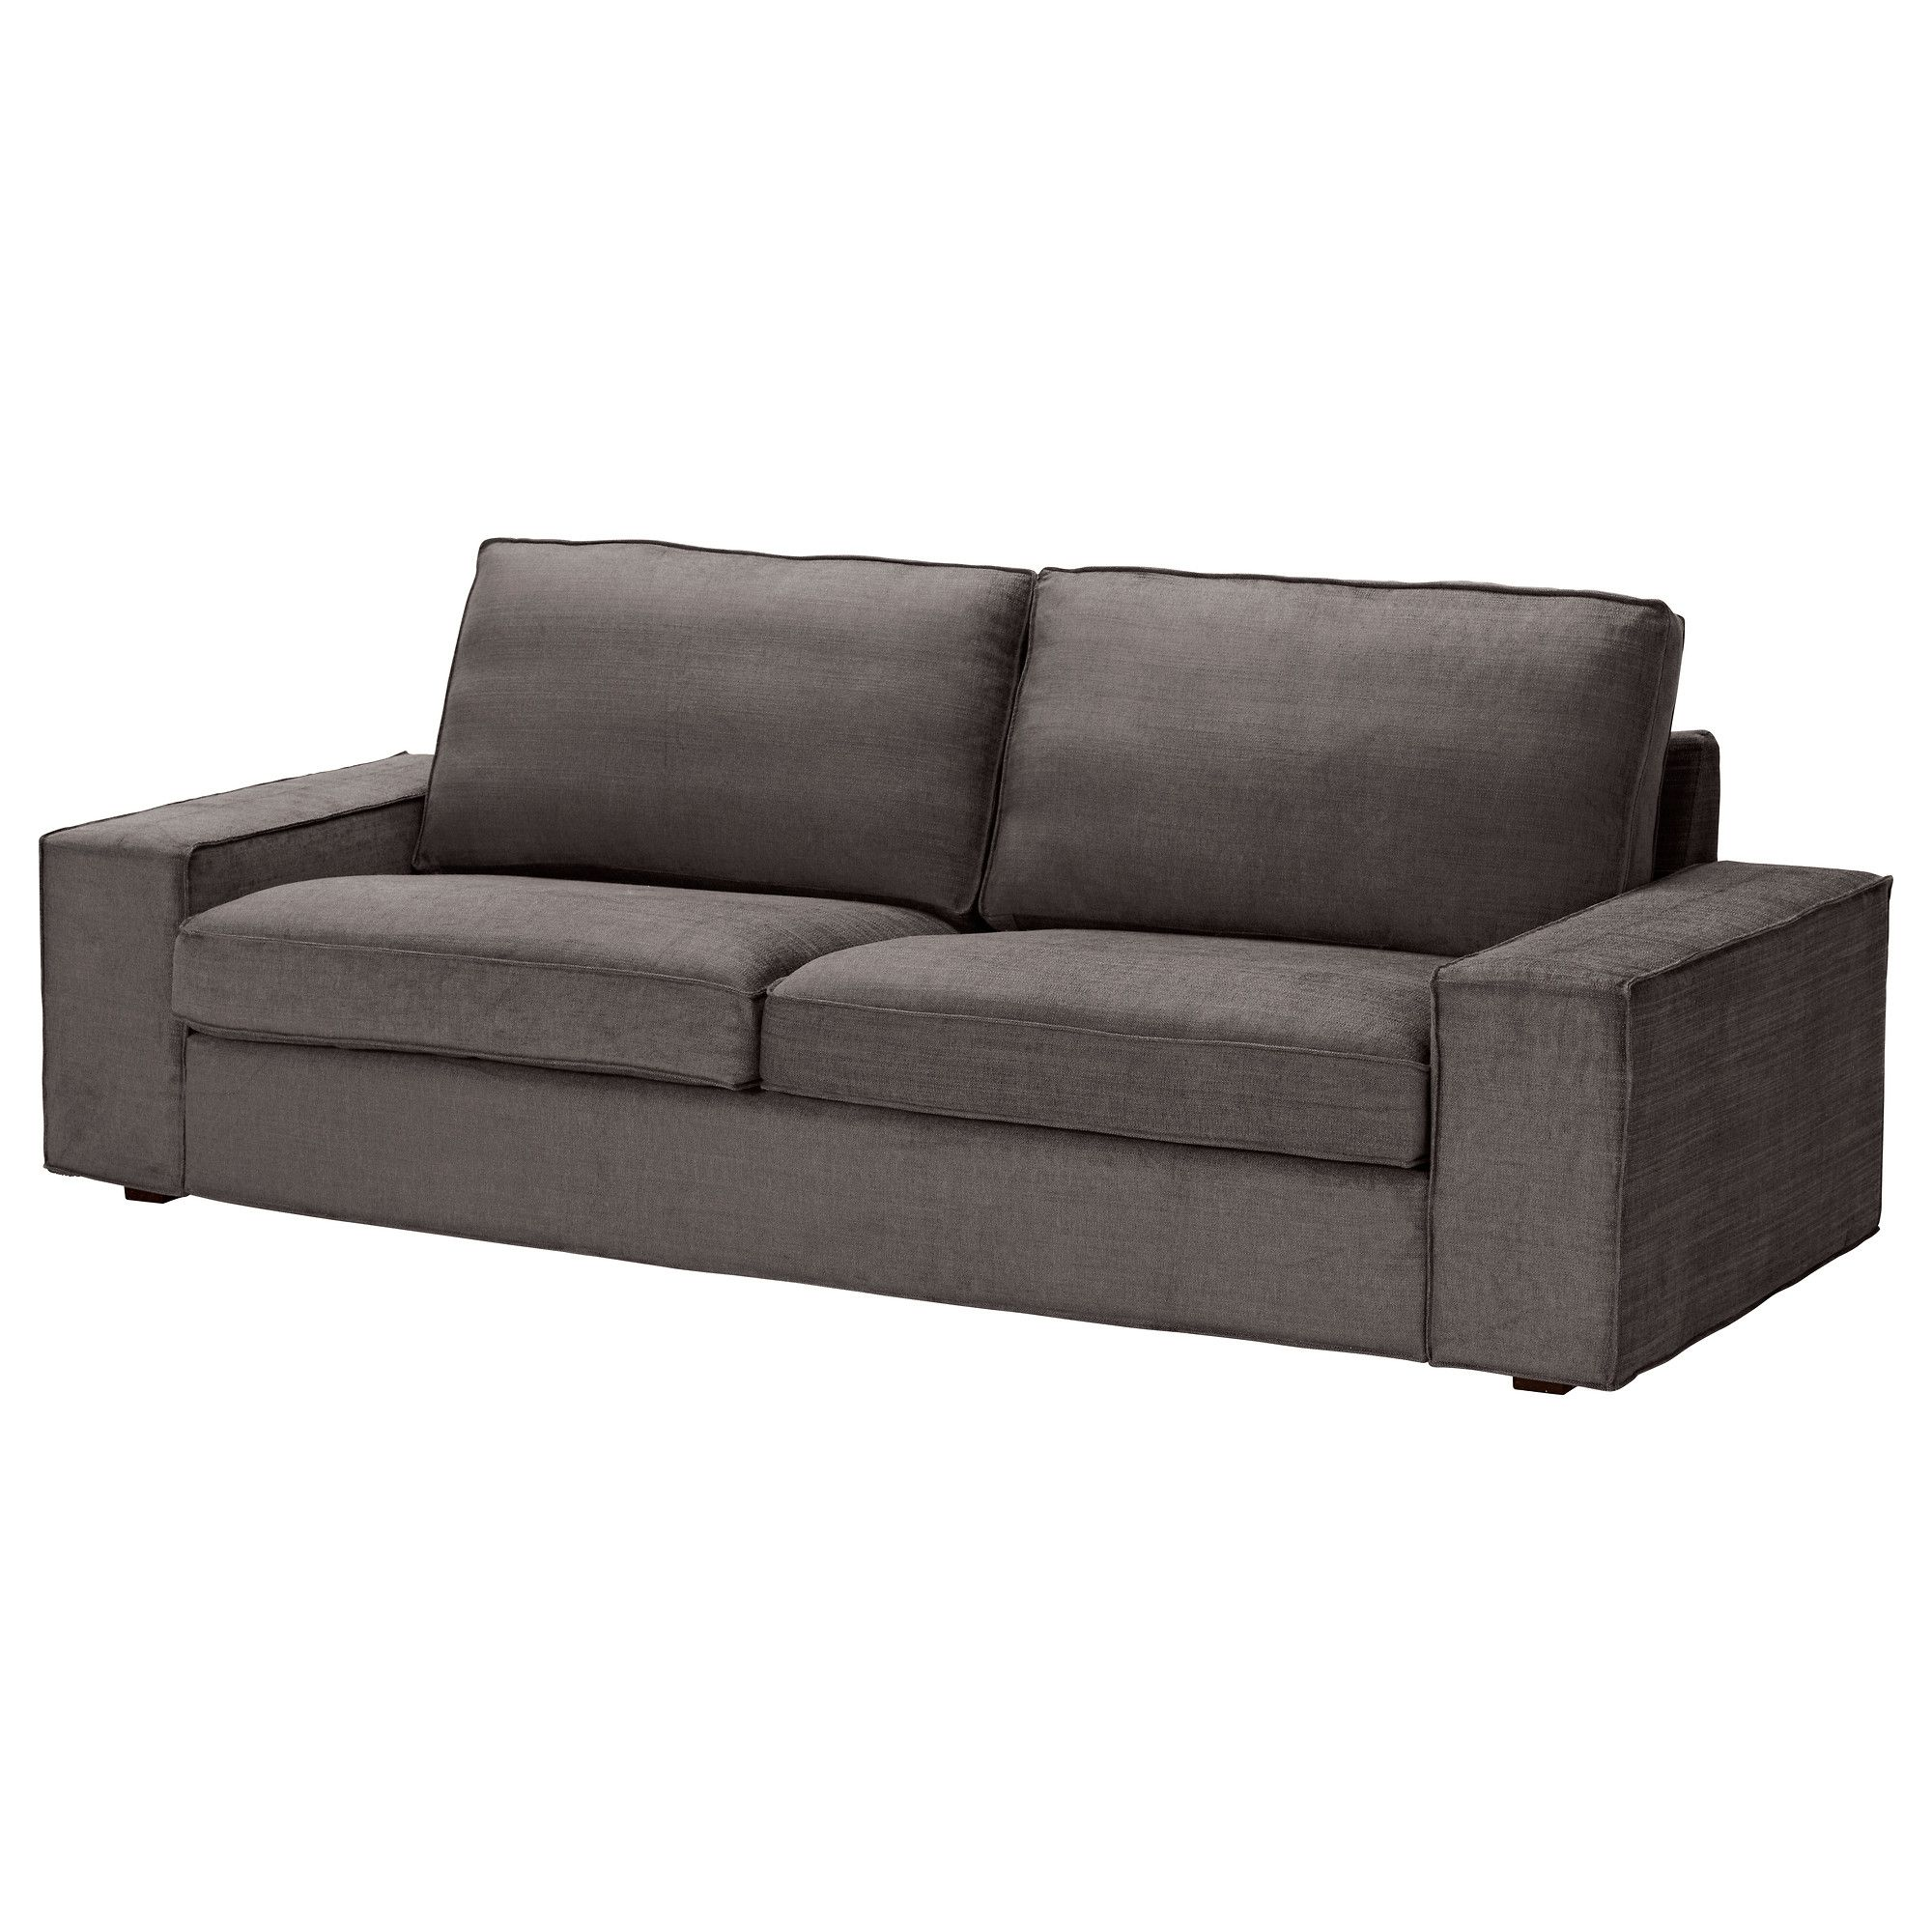 "KIVIK Sofa Tullinge gray brown IKEA 89"" $549"